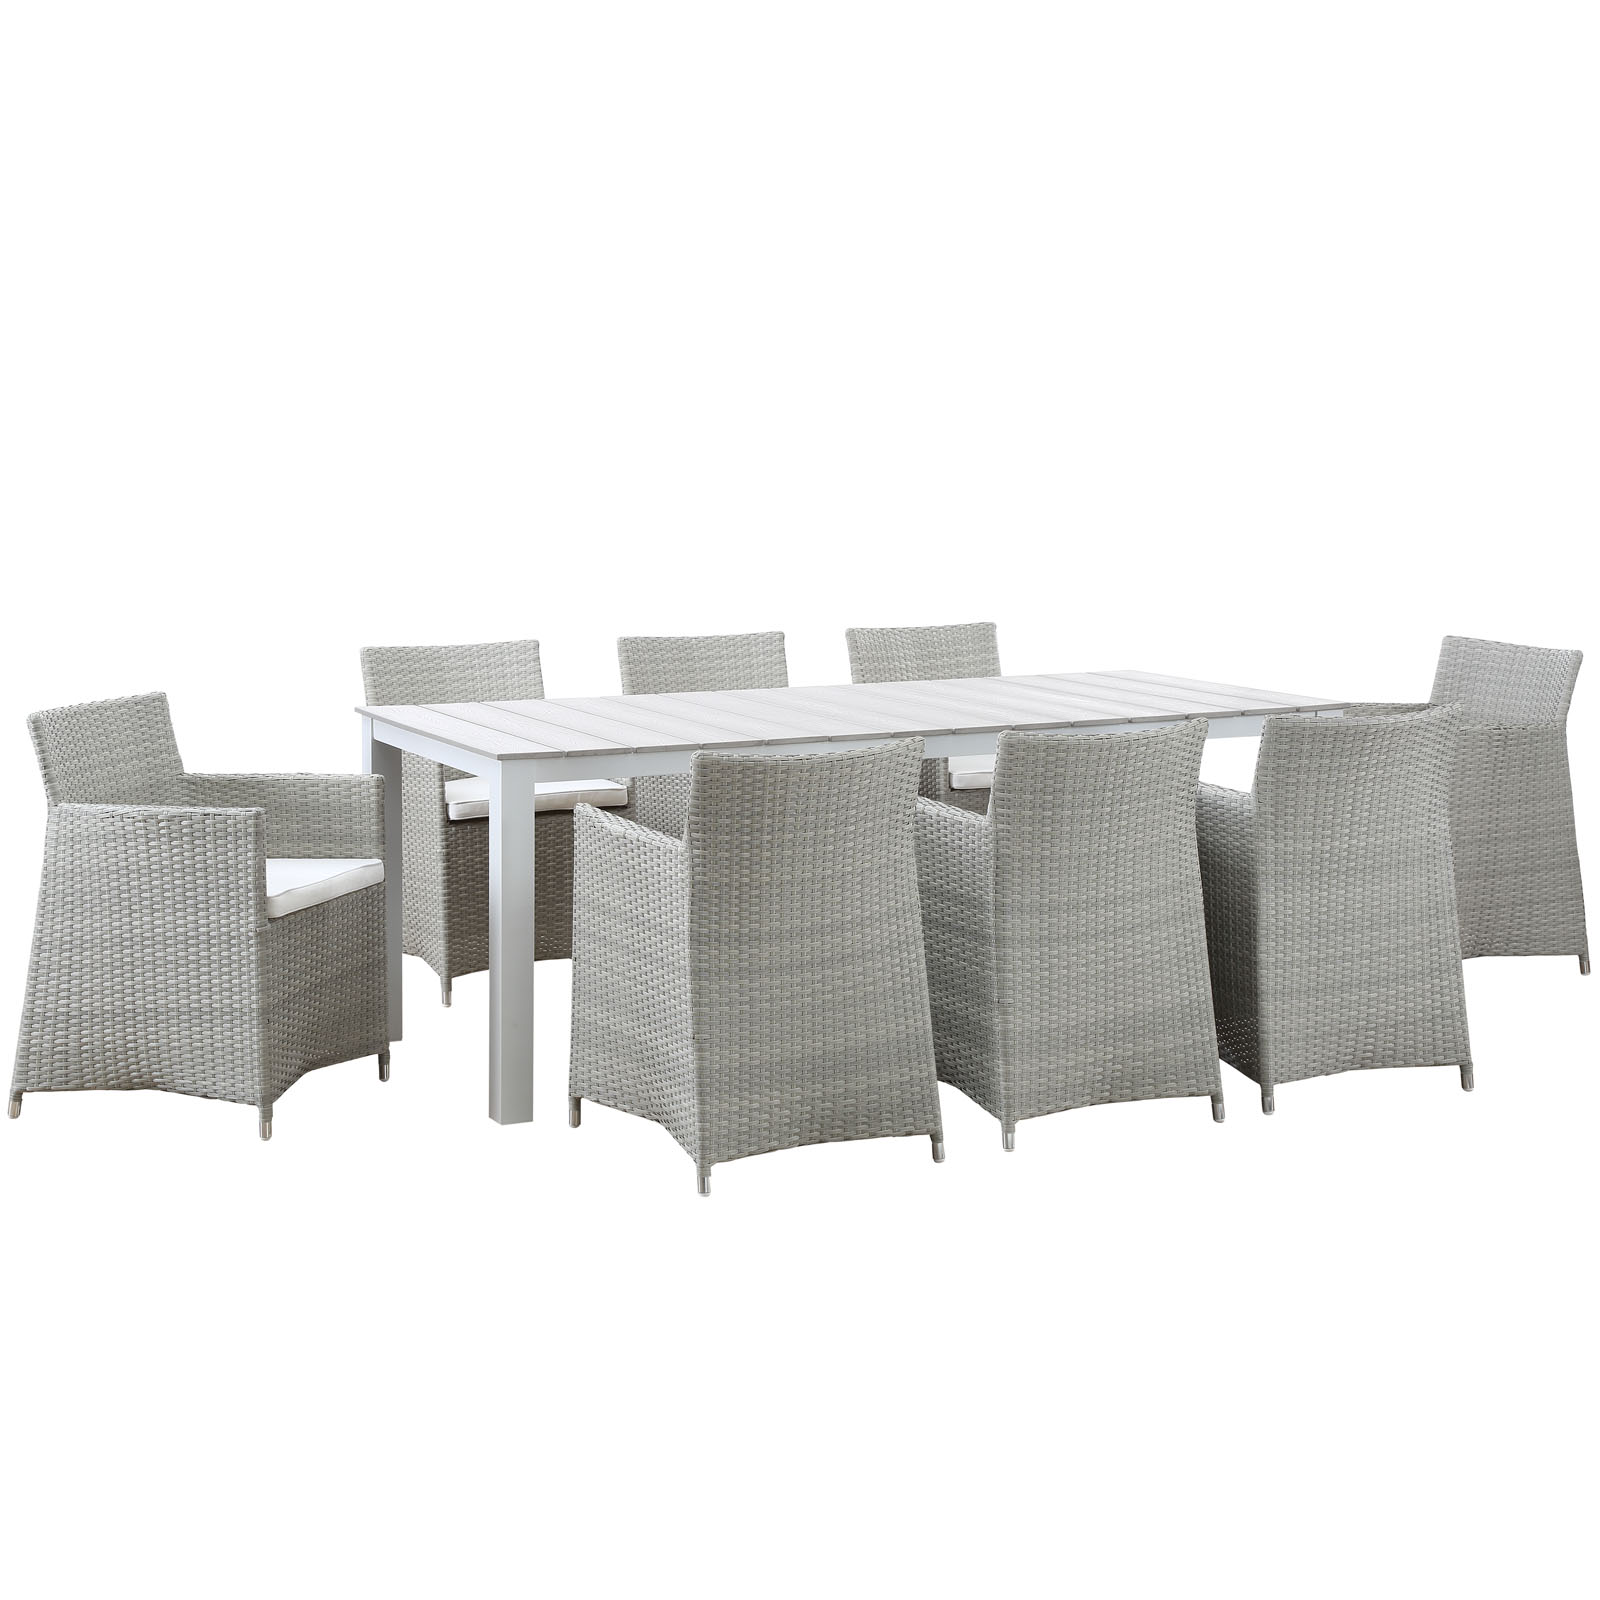 Modern Urban Contemporary 9 pcs Outdoor Patio Dining Room Set, Gray White Plastic by America Luxury